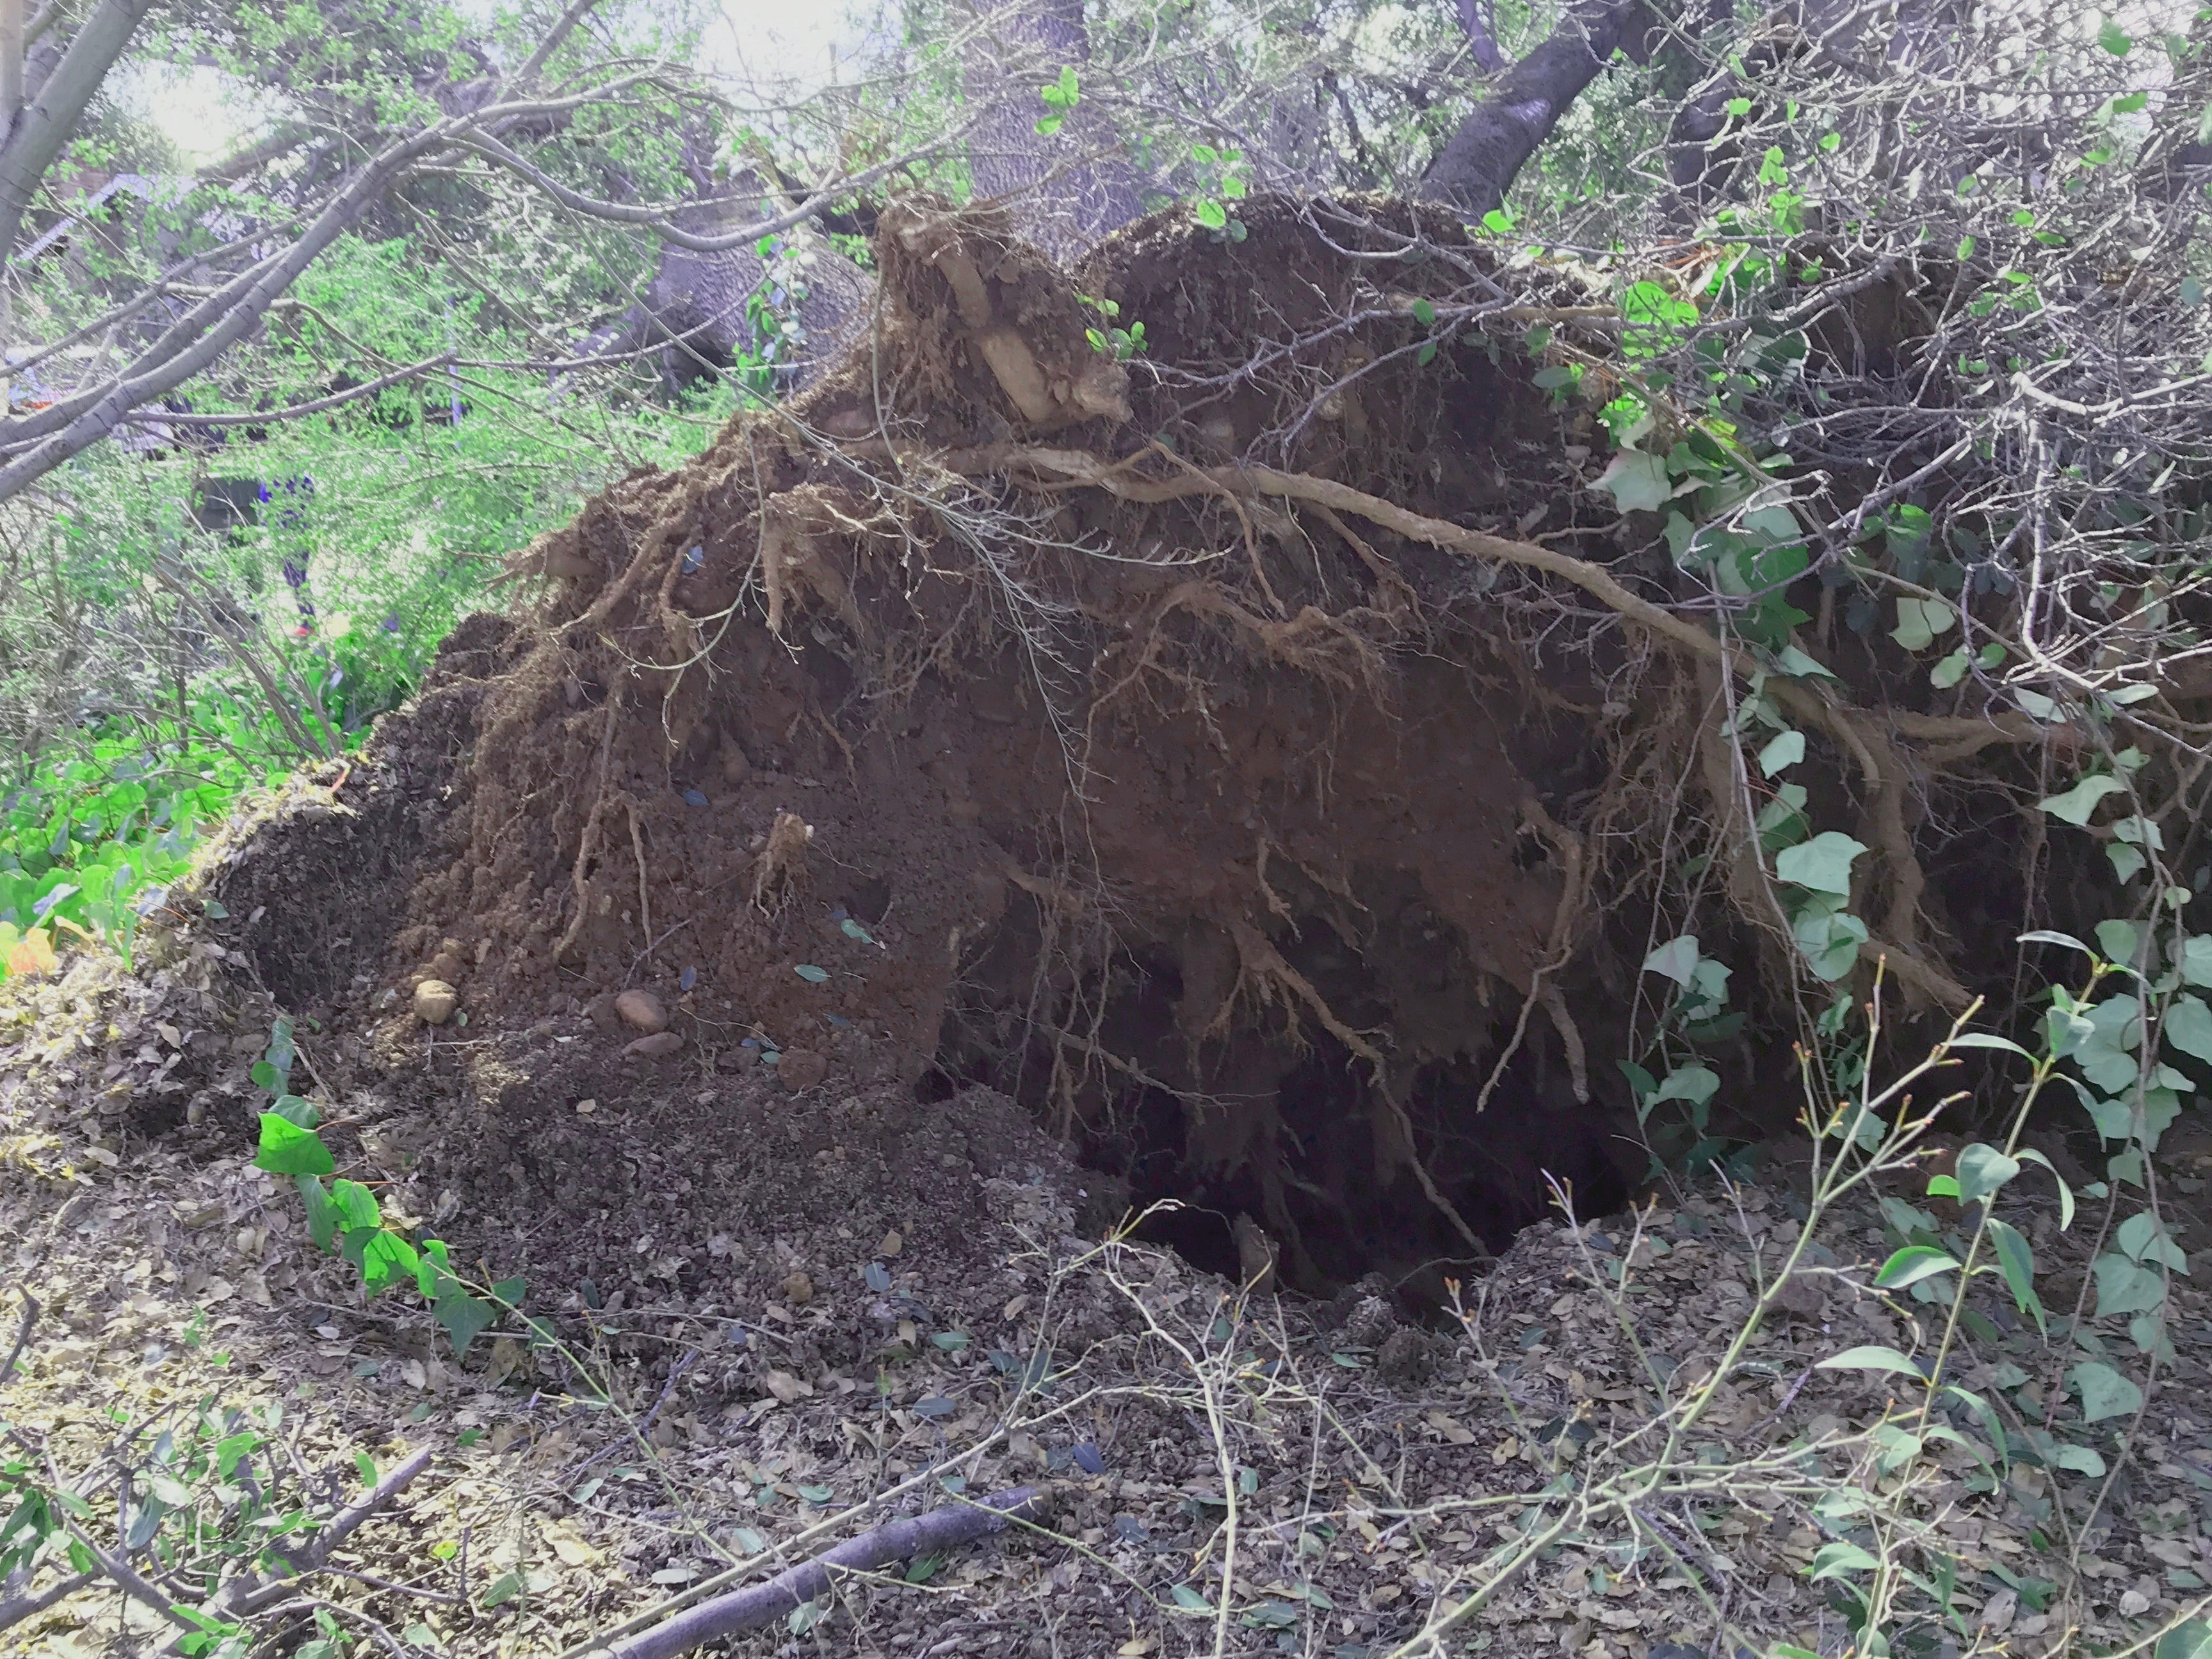 Damage from the storm: An uprooted tree in the front yard of a home on Terrace Street in Redding.